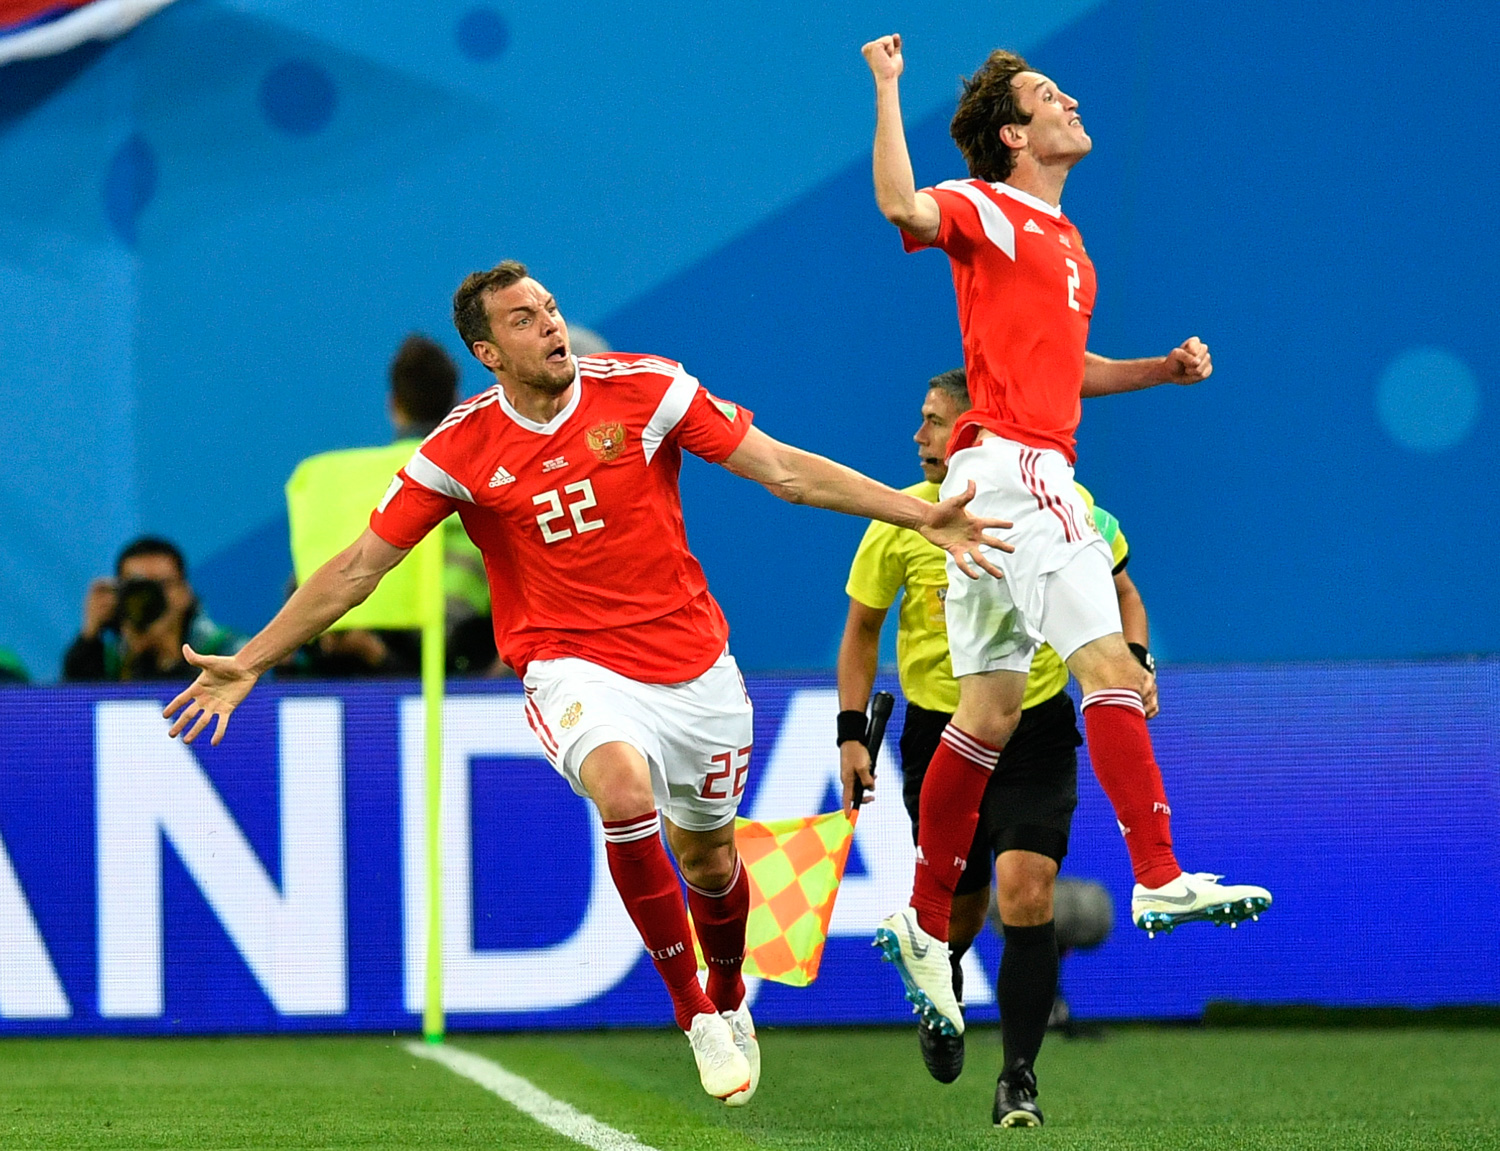 "<div class=""meta image-caption""><div class=""origin-logo origin-image none""><span>none</span></div><span class=""caption-text"">Russia's Artyom Dzyuba, left, celebrates with Russia's Mario Fernandes , right, after scoring his side's third goal during the group A match between Russia and Egypt (Martin Meissner/AP)</span></div>"